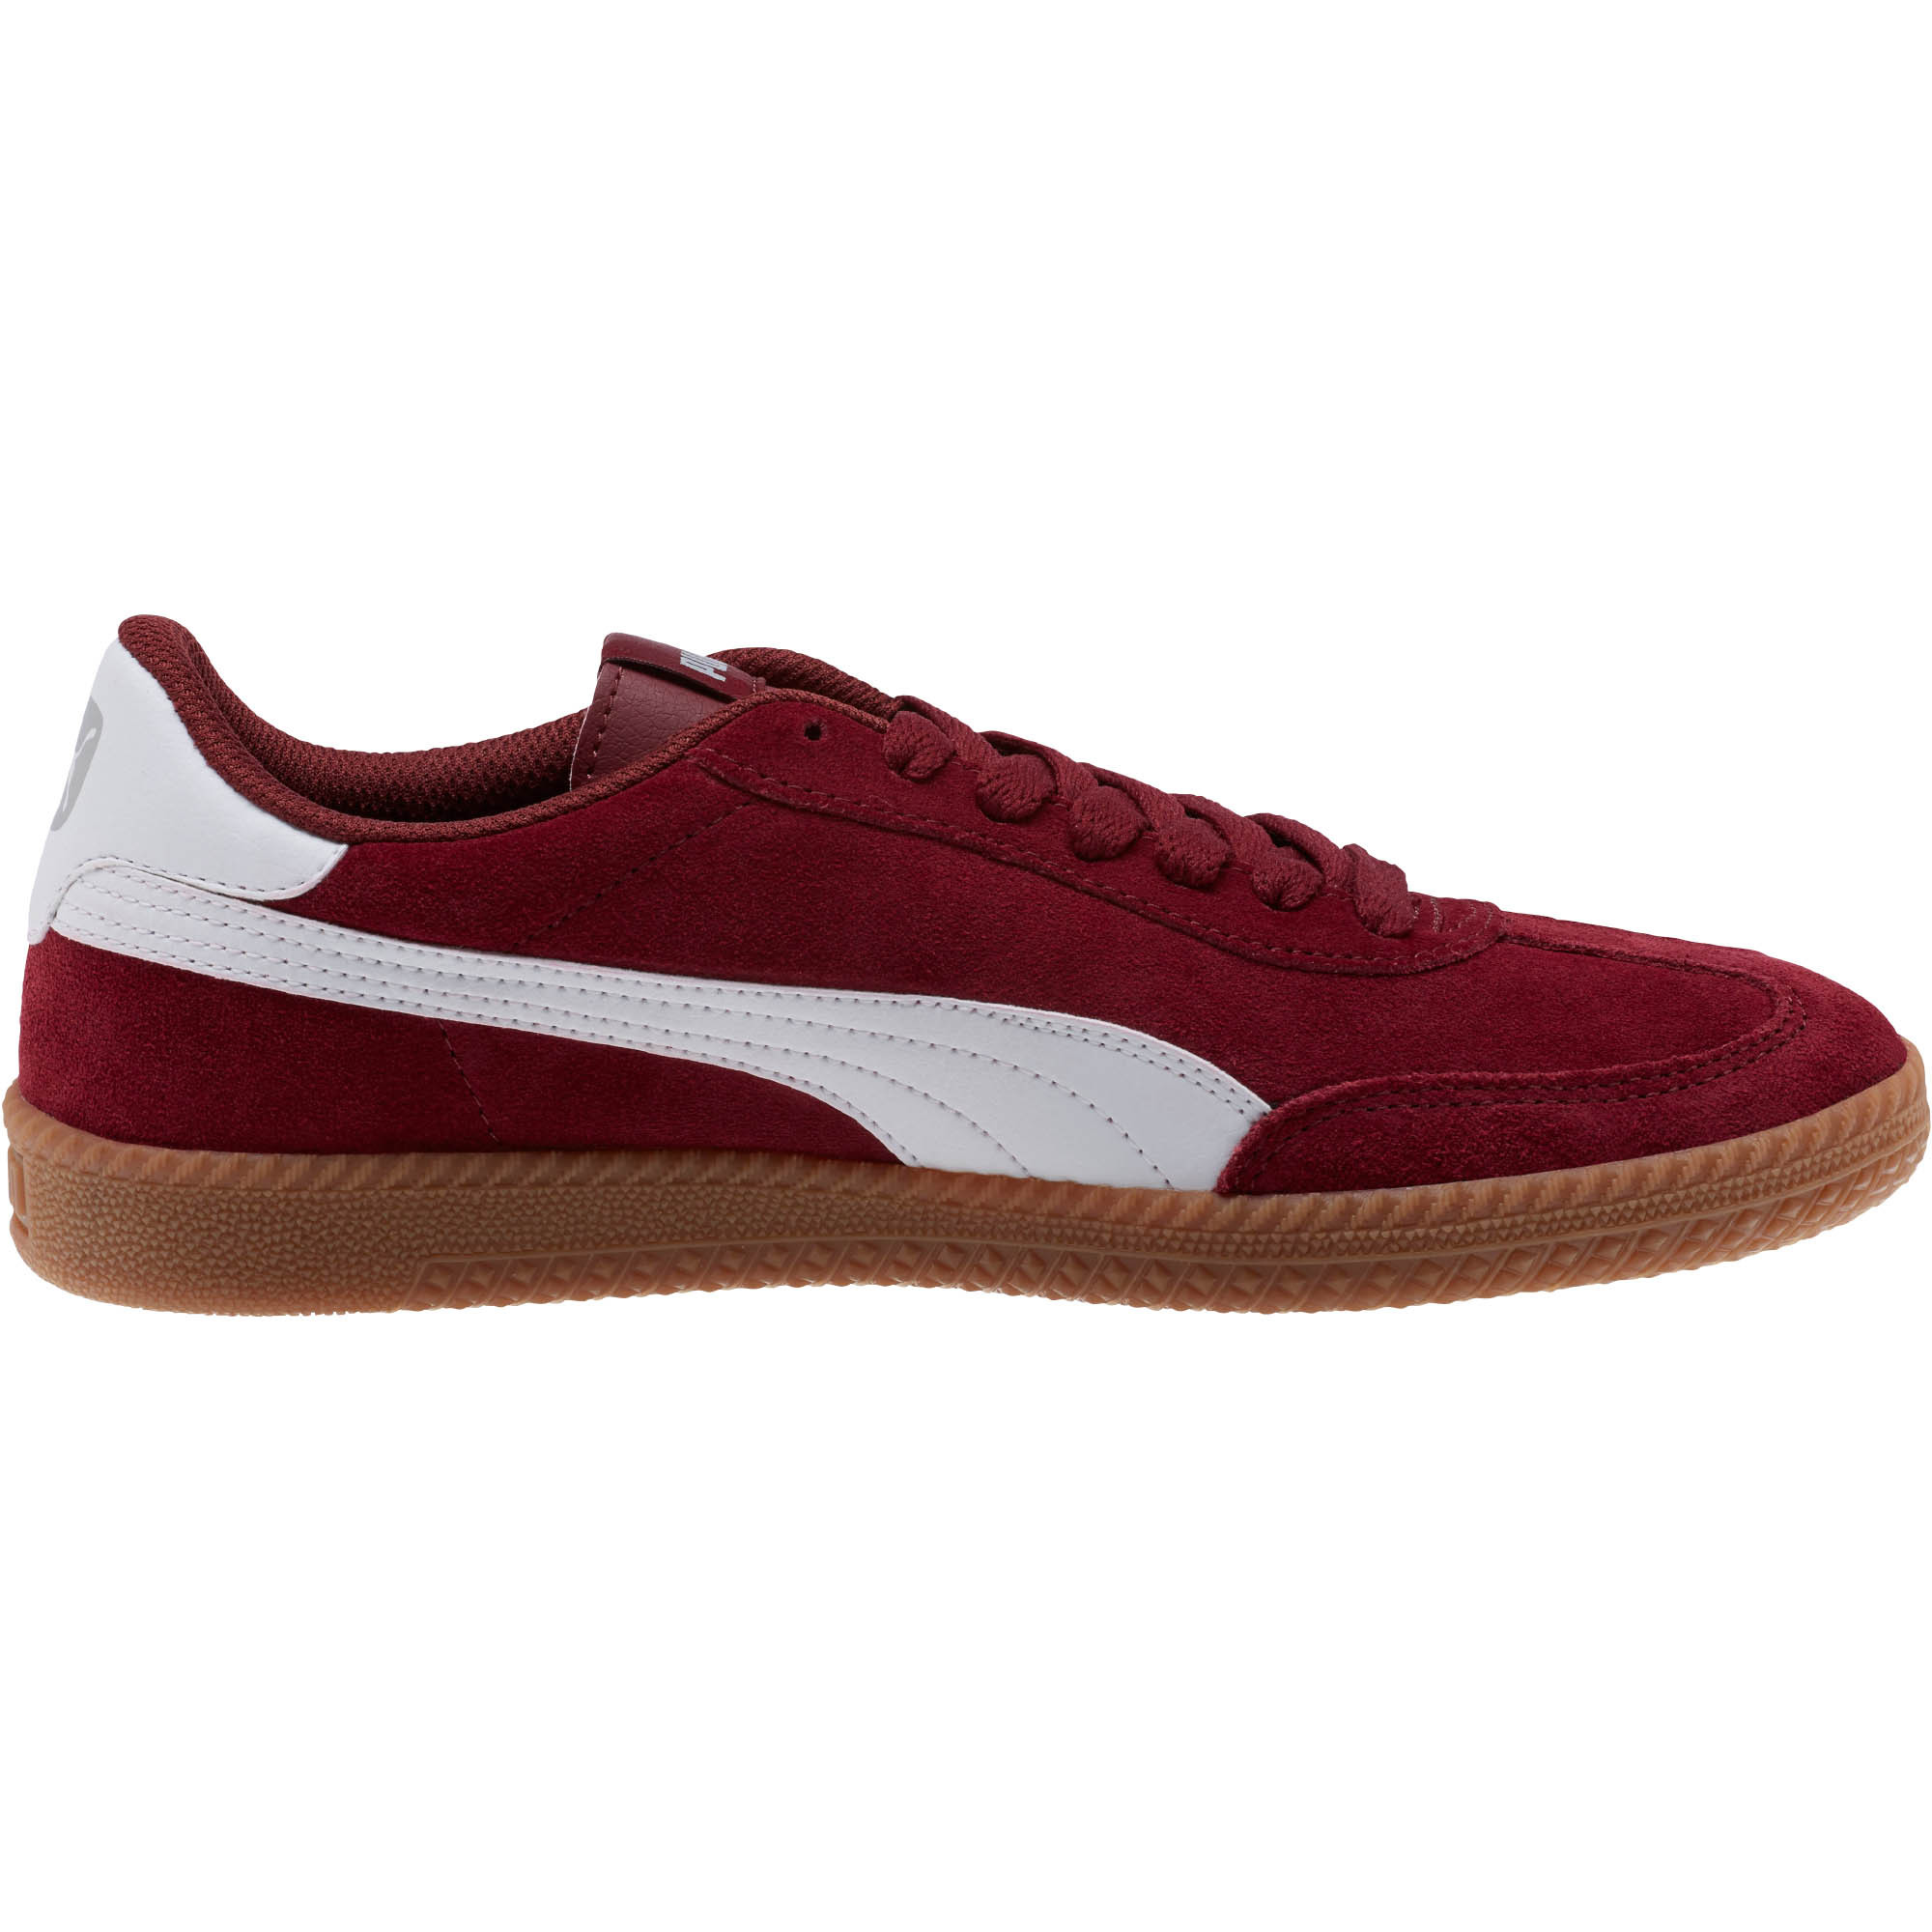 PUMA-Men-039-s-Astro-Cup-Suede-Sneakers thumbnail 19